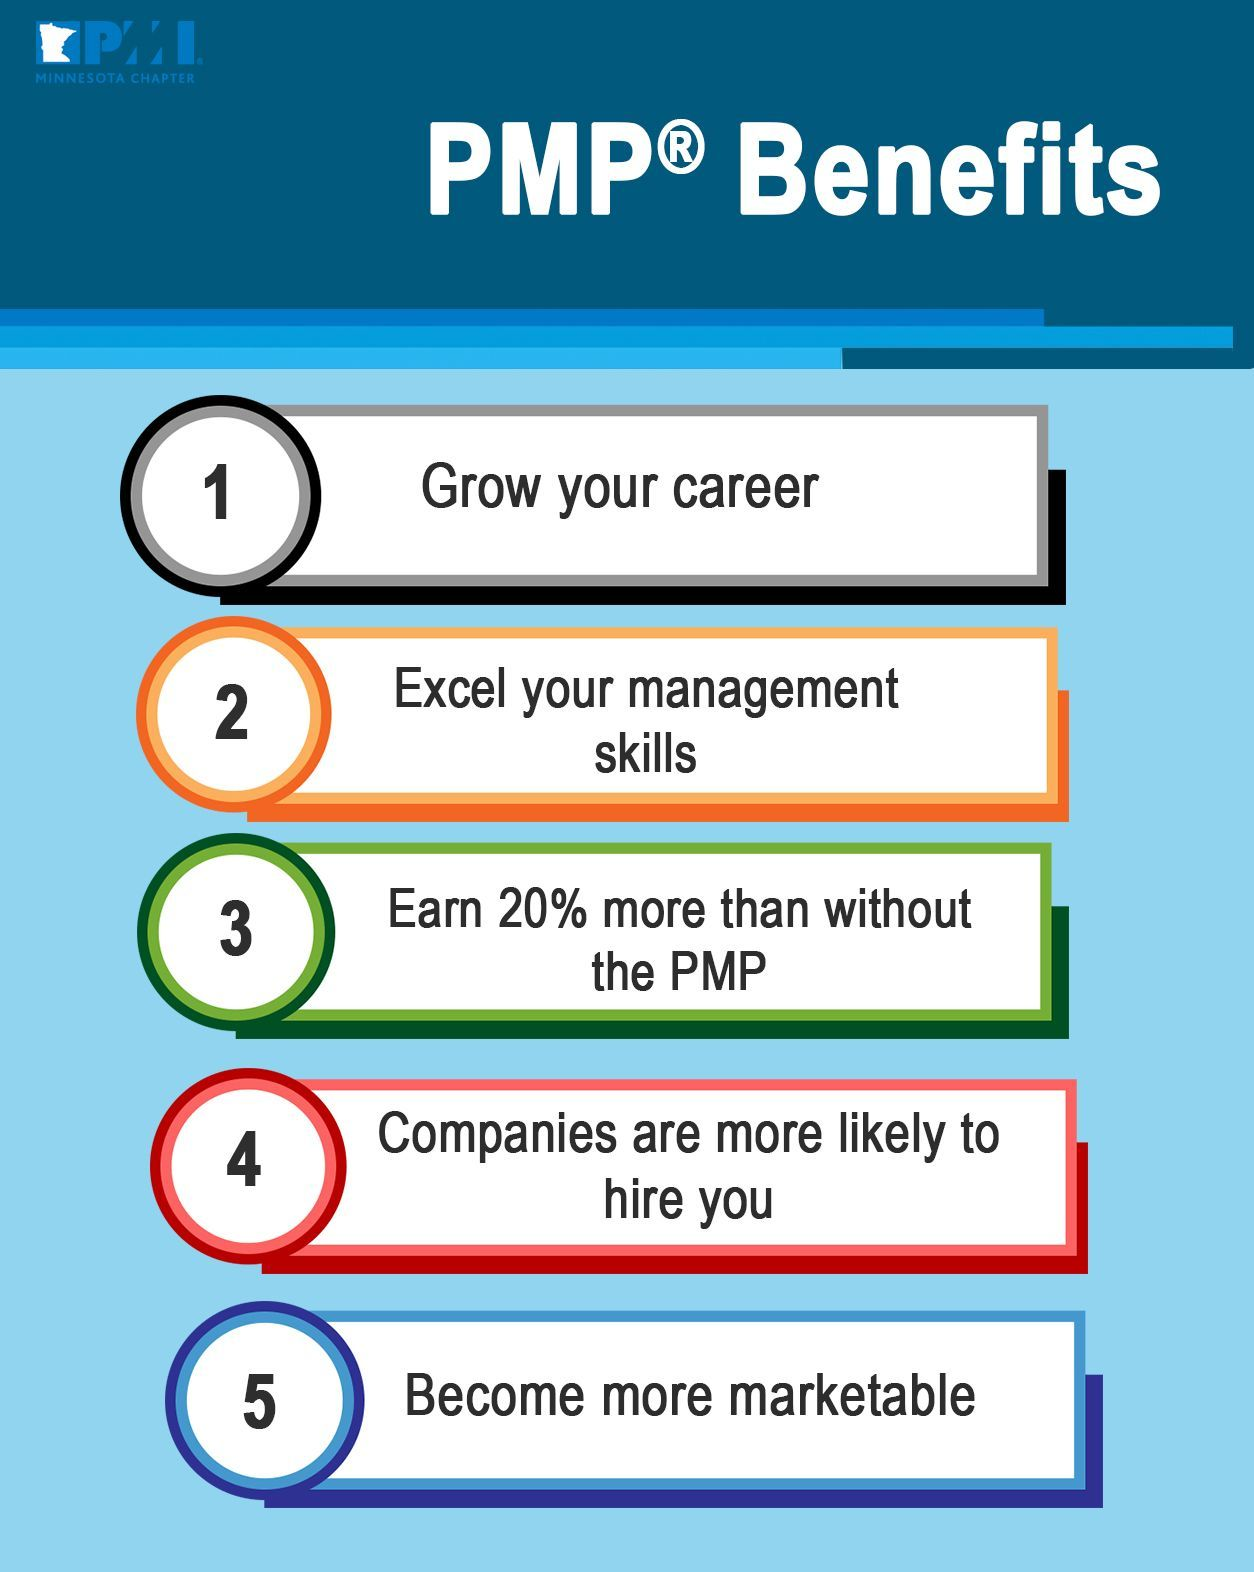 You'll keep reaping all the benefits of a PMP